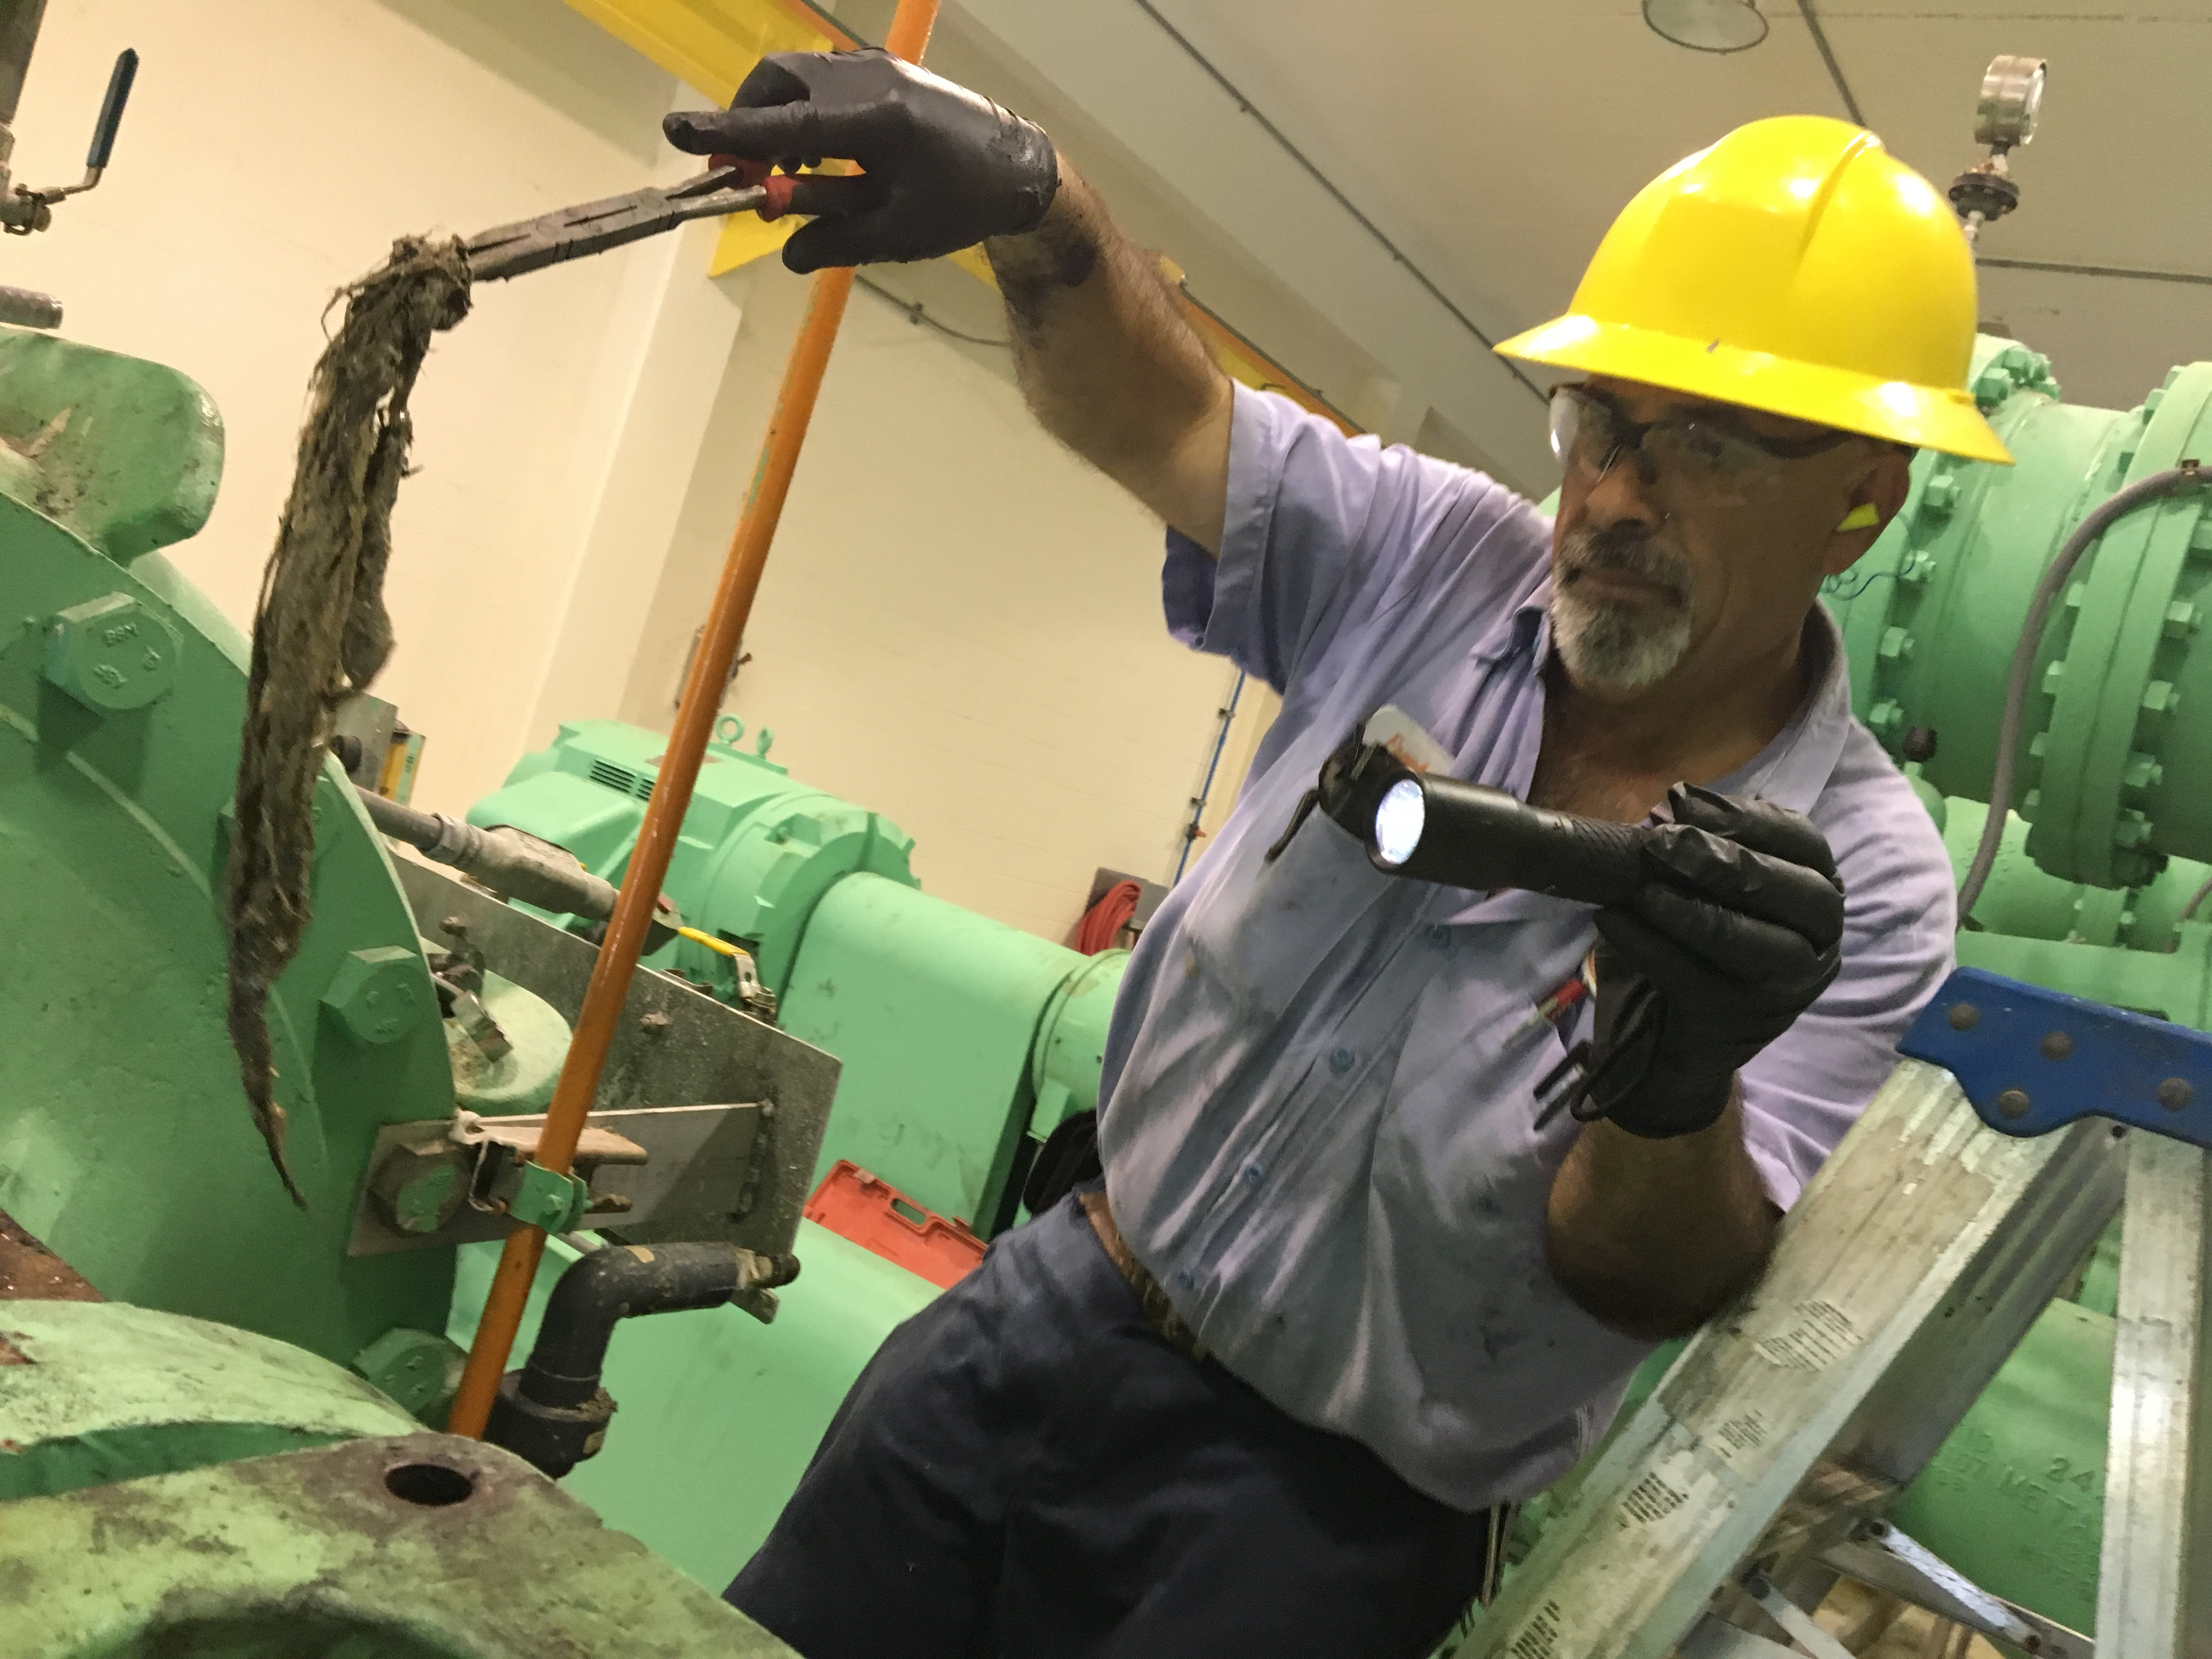 Employee pulling wipes clumped together out of sewer booster pump